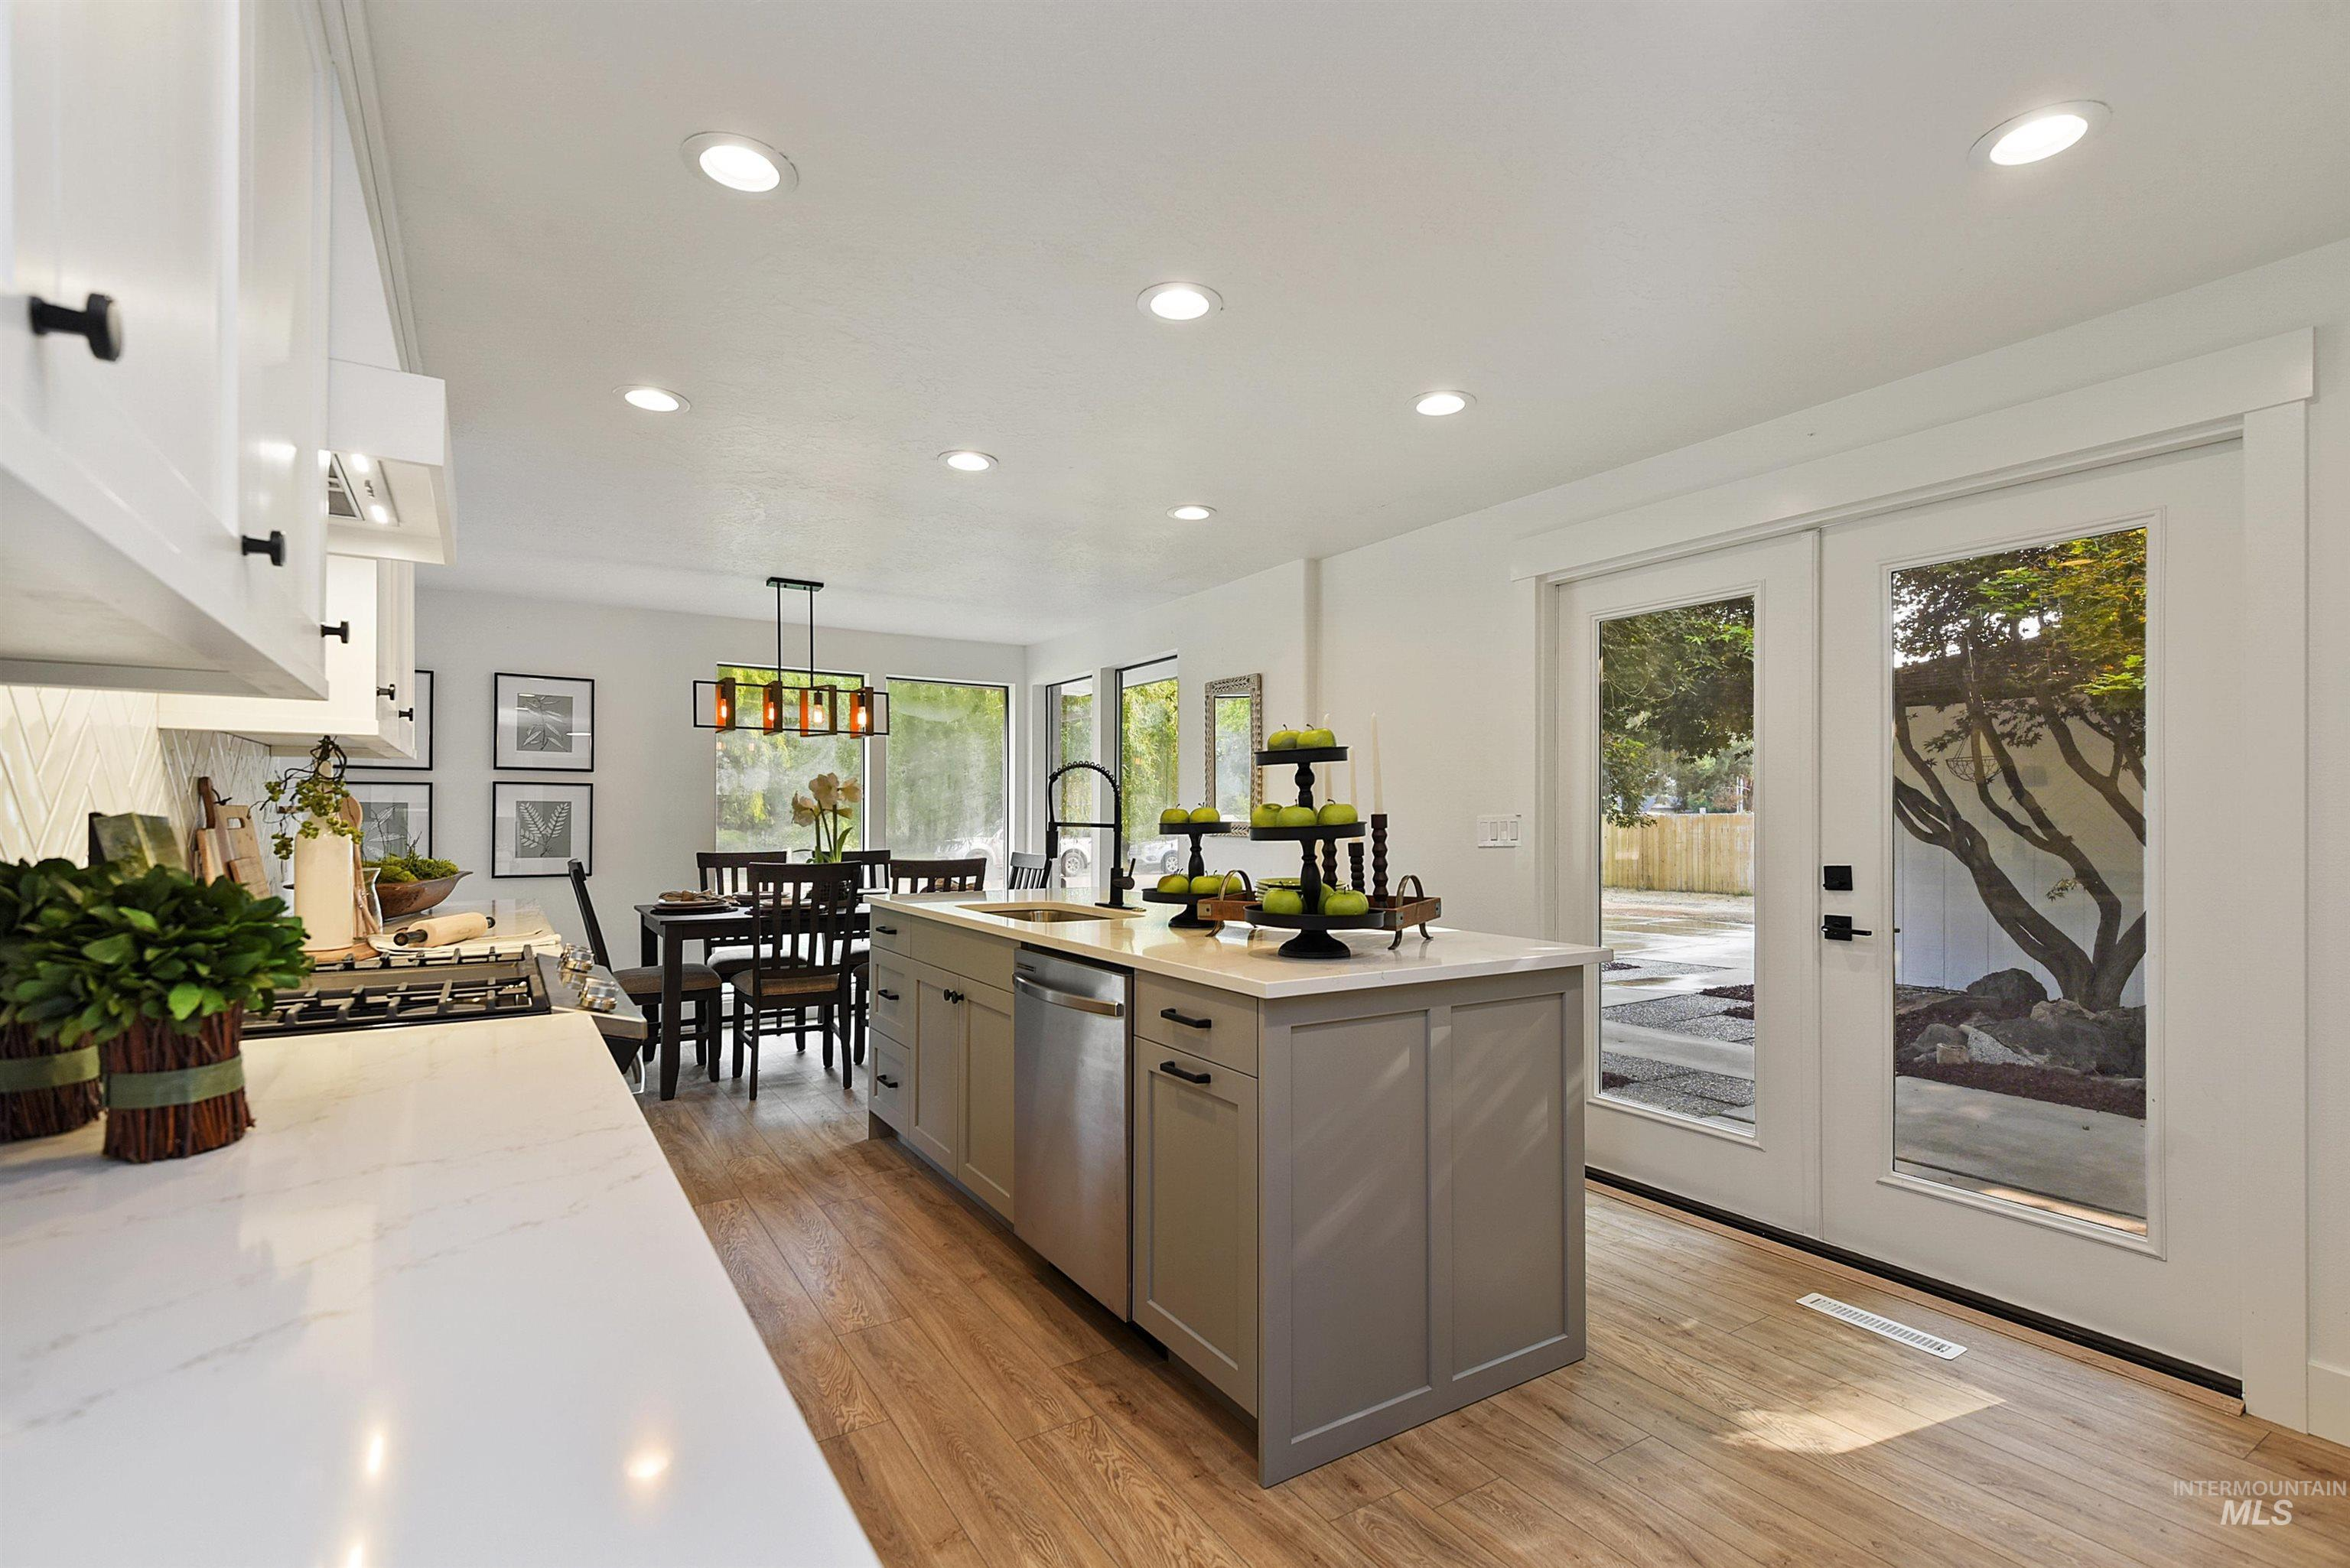 This renovation is electric! Gourmet kitchen with quartz counters, impressive tile work, gas range & expansive island. Custom cabinetry throughout includes soft close uppers & lowers, pull out shelves/bins & a gorgeous wooden hood vent. Main level features large windows, a gas fireplace & the kitchen of your dreams! Upstairs you'll get lost in the master suite with it's own sitting room & balcony overlooking your huge half acre lot. Don't miss the walk-in shower & large closet! Two additional bedrooms & bathroom complete the upstairs. Entertain in the lower level with awesome recreational space where you can walk out to an impressive covered patio. You'll also find an additional bedroom or office with it's own gas fireplace. Downstairs has a light & bright laundry room, storage & full bathroom. There's room for it all with a full half acre, extra concrete, an oversized two car garage & space for your RV on this fully fenced lot without HOA's. Hurry because you don't want to miss the one with the green door! - Ruth Kmiecik, Main: 208-965-3570, Peterson & Associates REALTORS, Main: 208-466-4098,